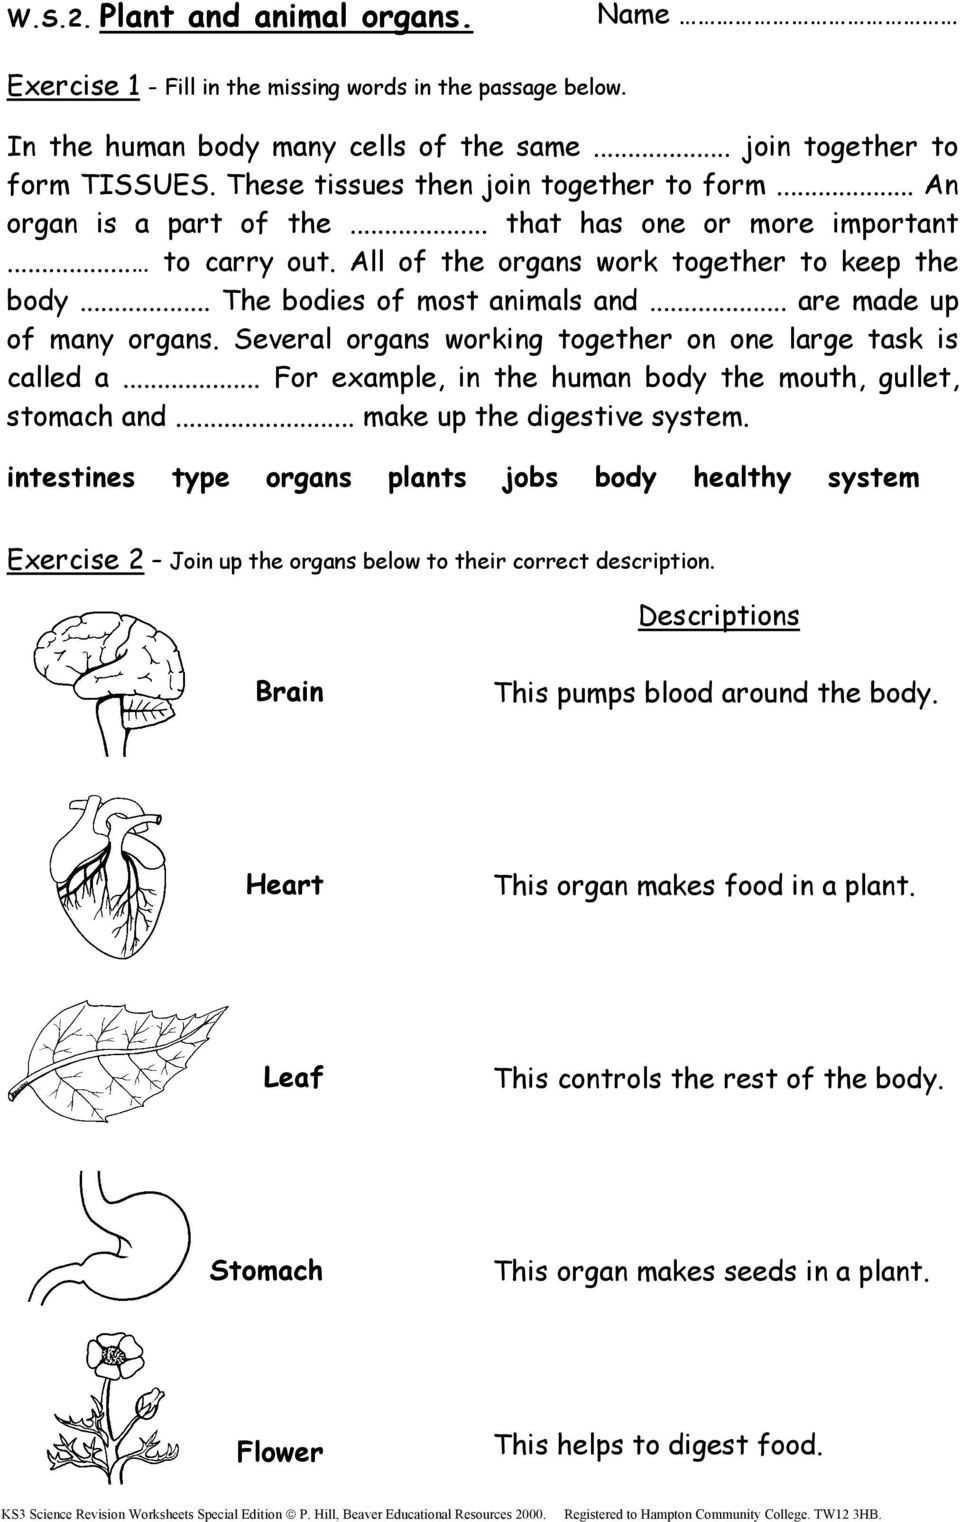 7th Grade Science Worksheets Pdf Ks3 Science Revision Worksheets Pdf Free Ks2 Special Edition